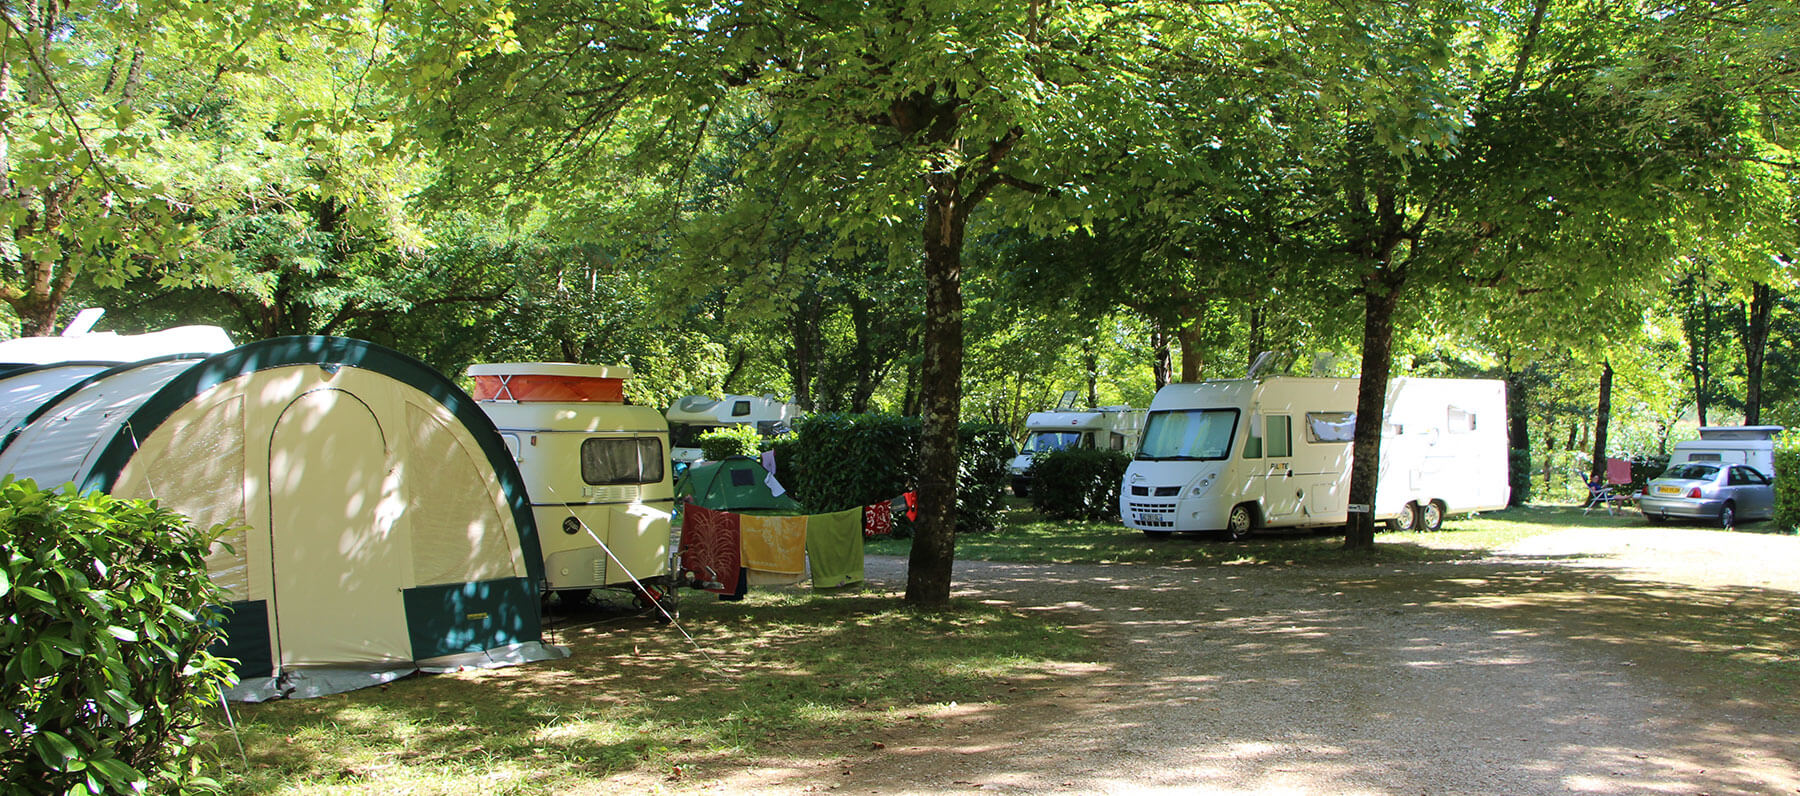 Shaded accommodation for camper vans in the Lot